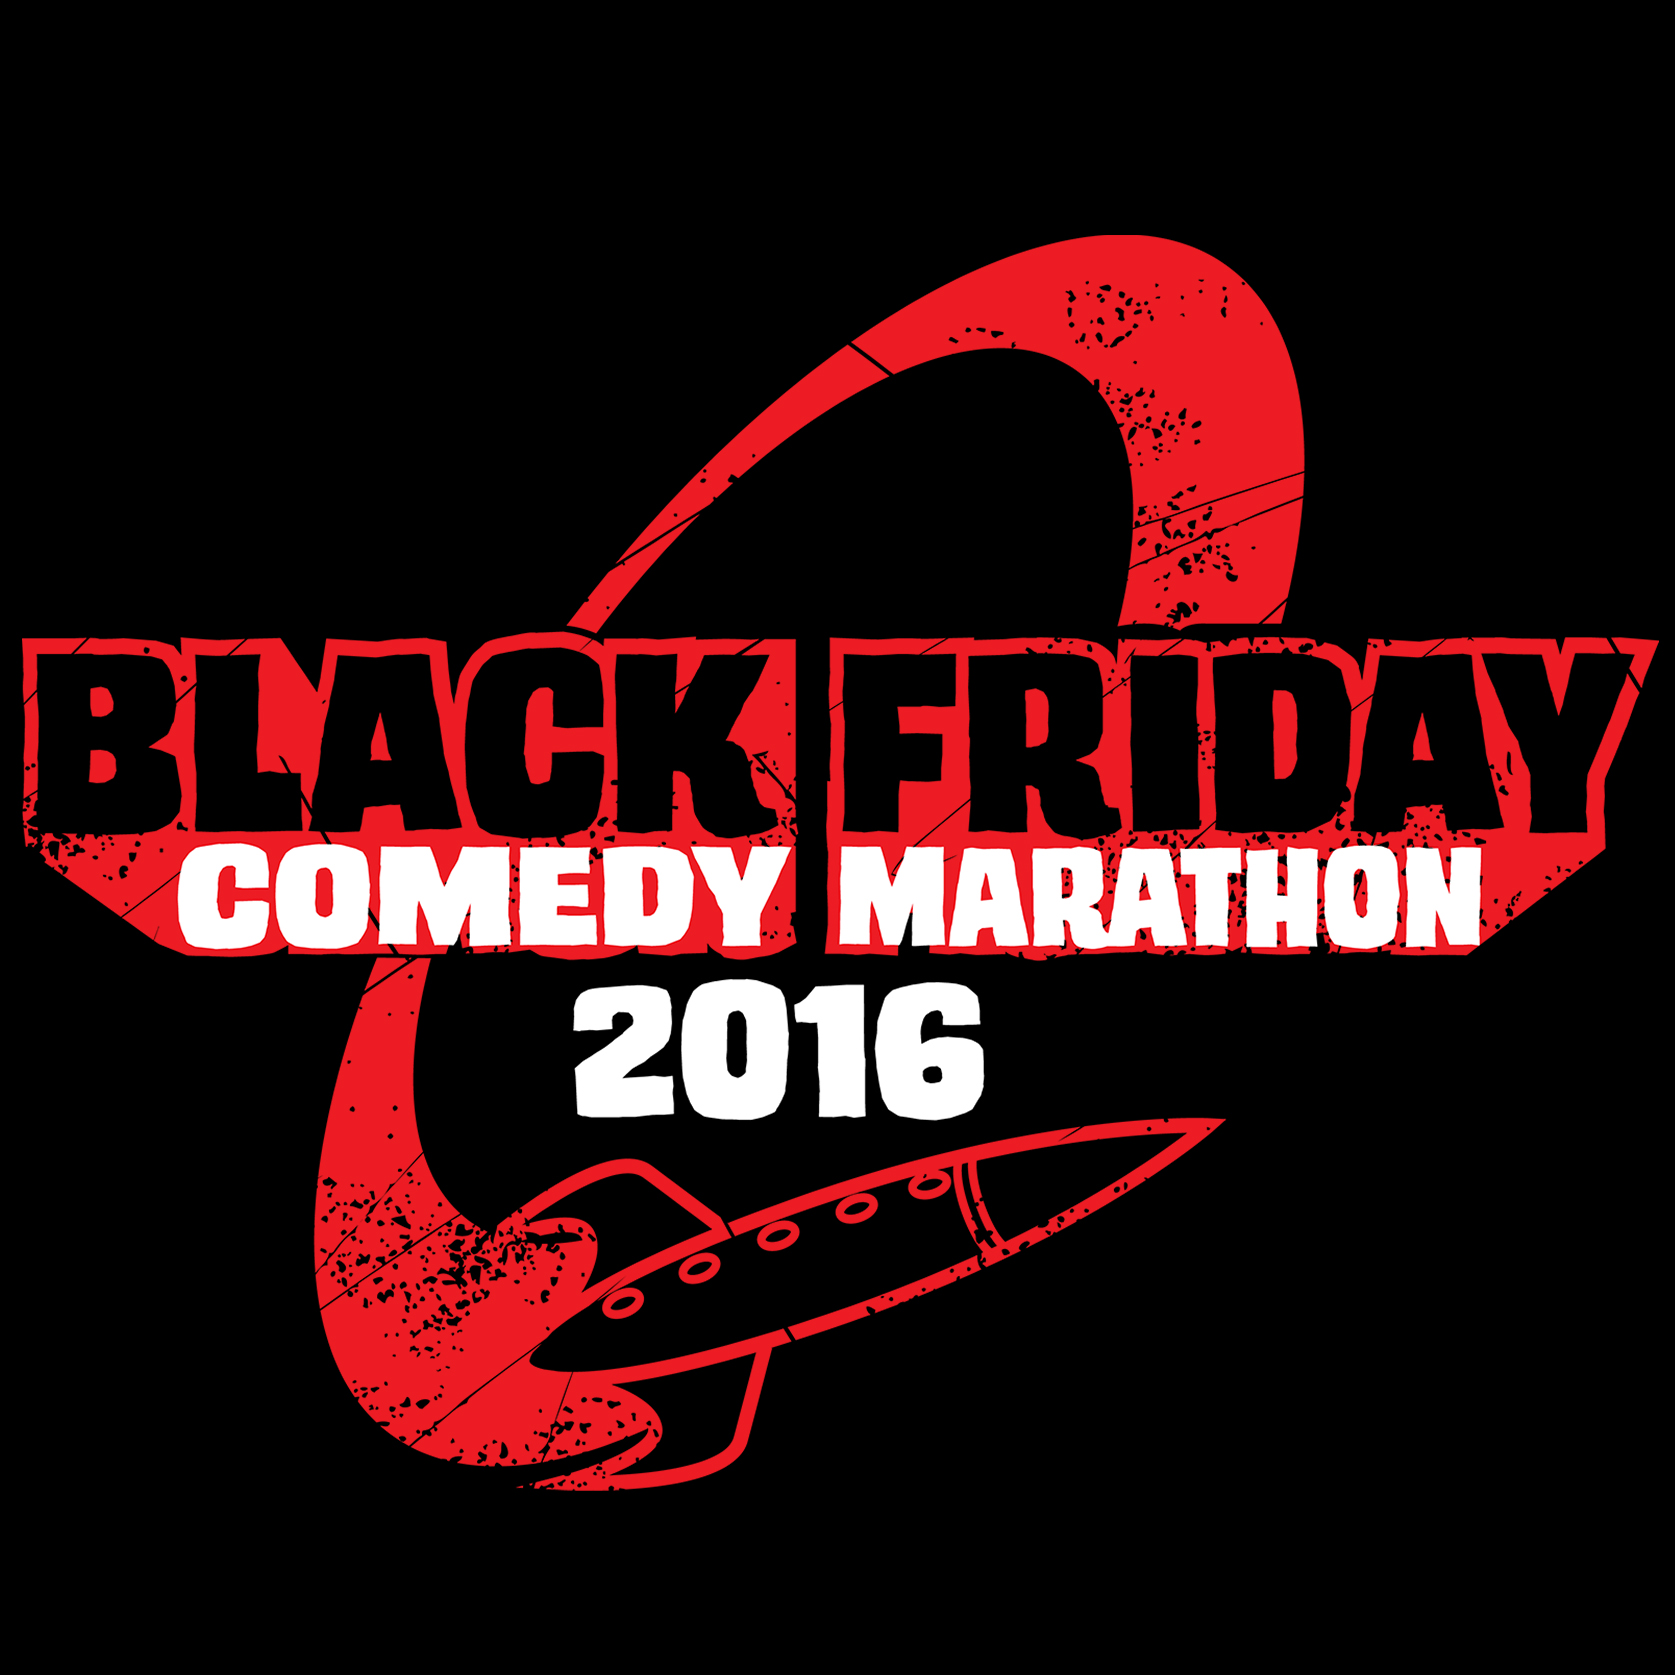 Black Friday Comedy Marathon